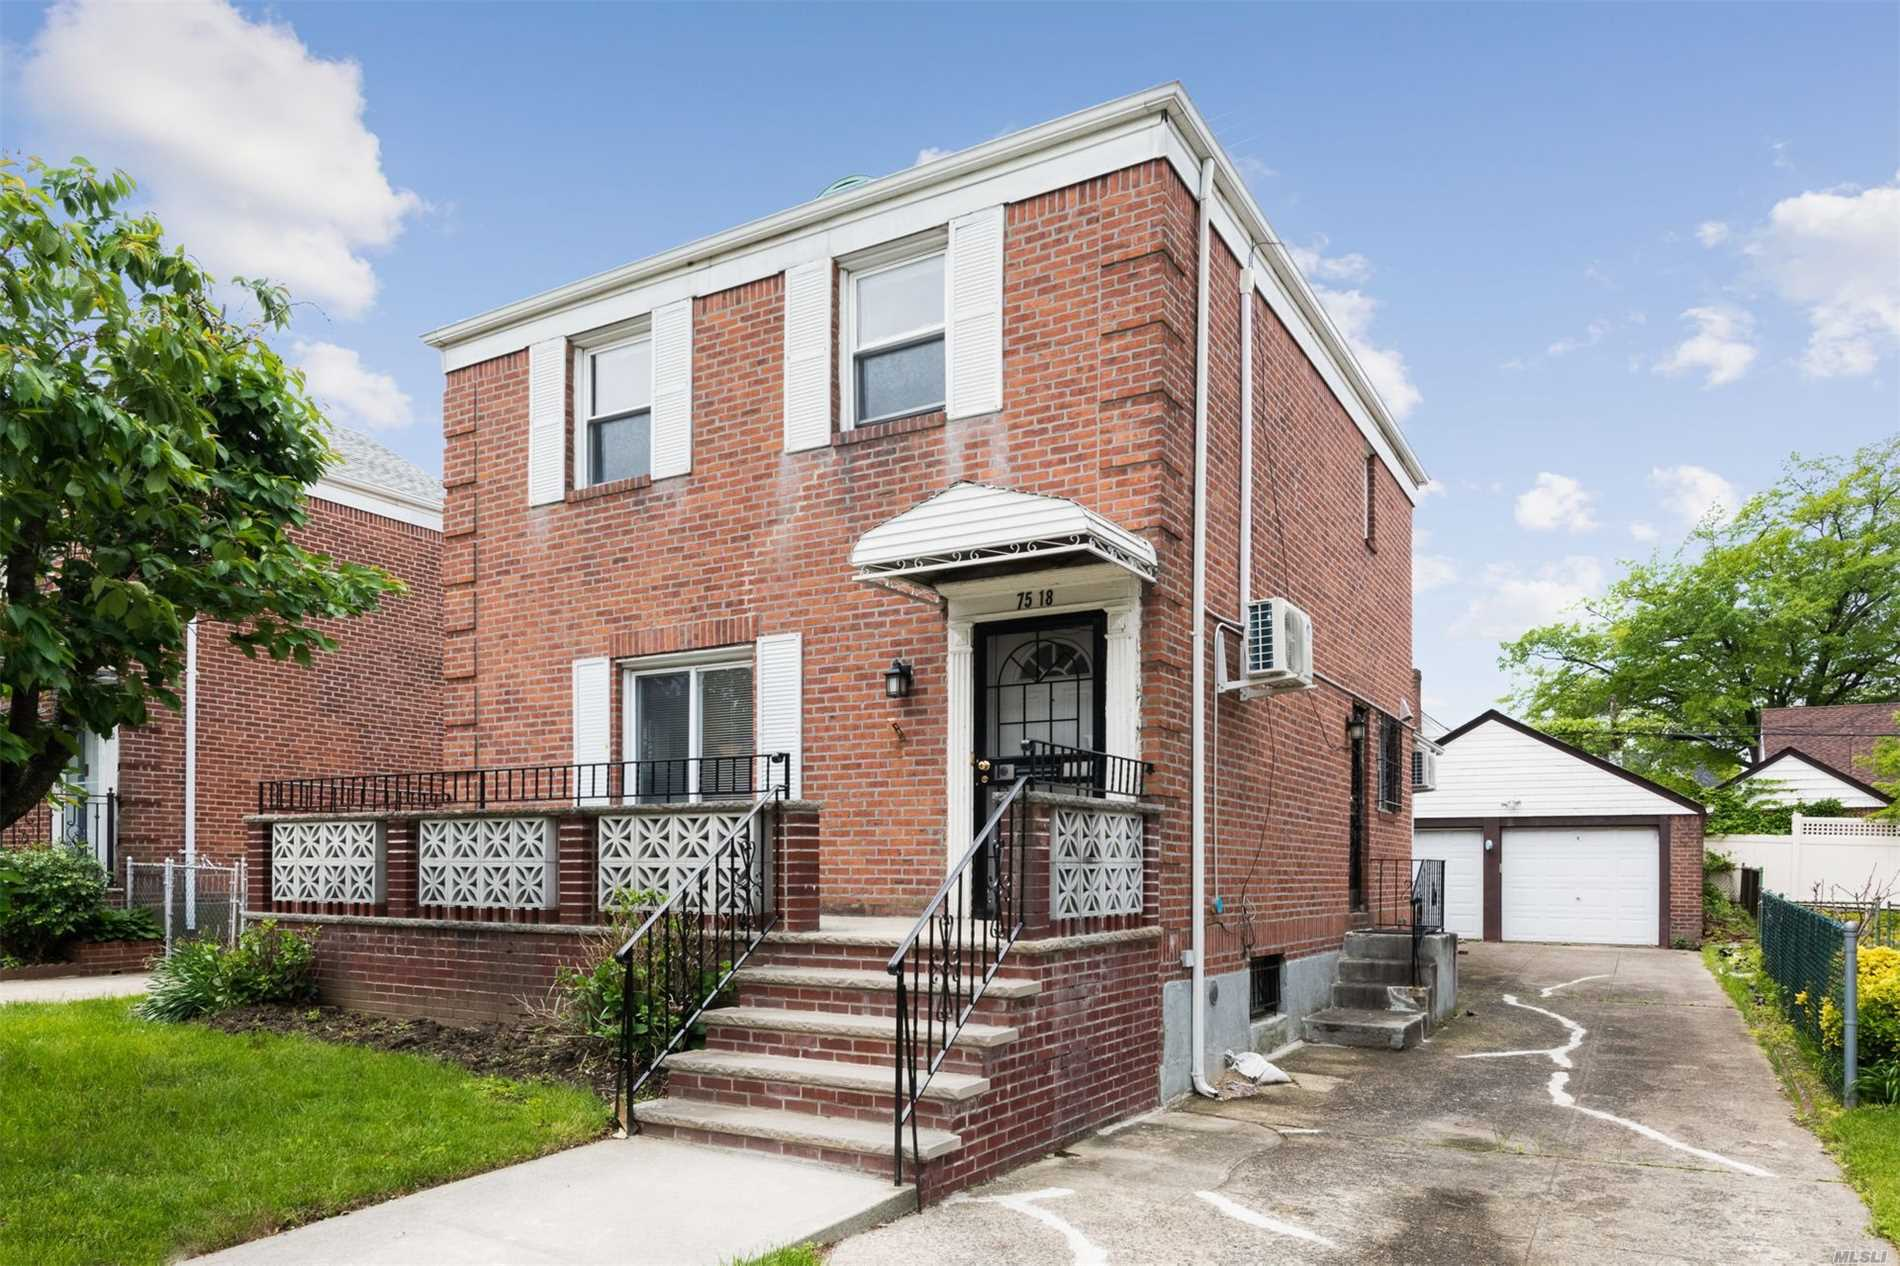 Beautiful newly renovated brick house in a quiet block of fresh meadows. This house features a long drive way and detached garage, 4 brooms, 2.5 baths, finished basement and plenty closet space. It is close to St. John's university, groceries, places of worship, restaurants and shopping stores. QM express buses to manhattan stop on union turnpike and Q30 on utopia parkway.